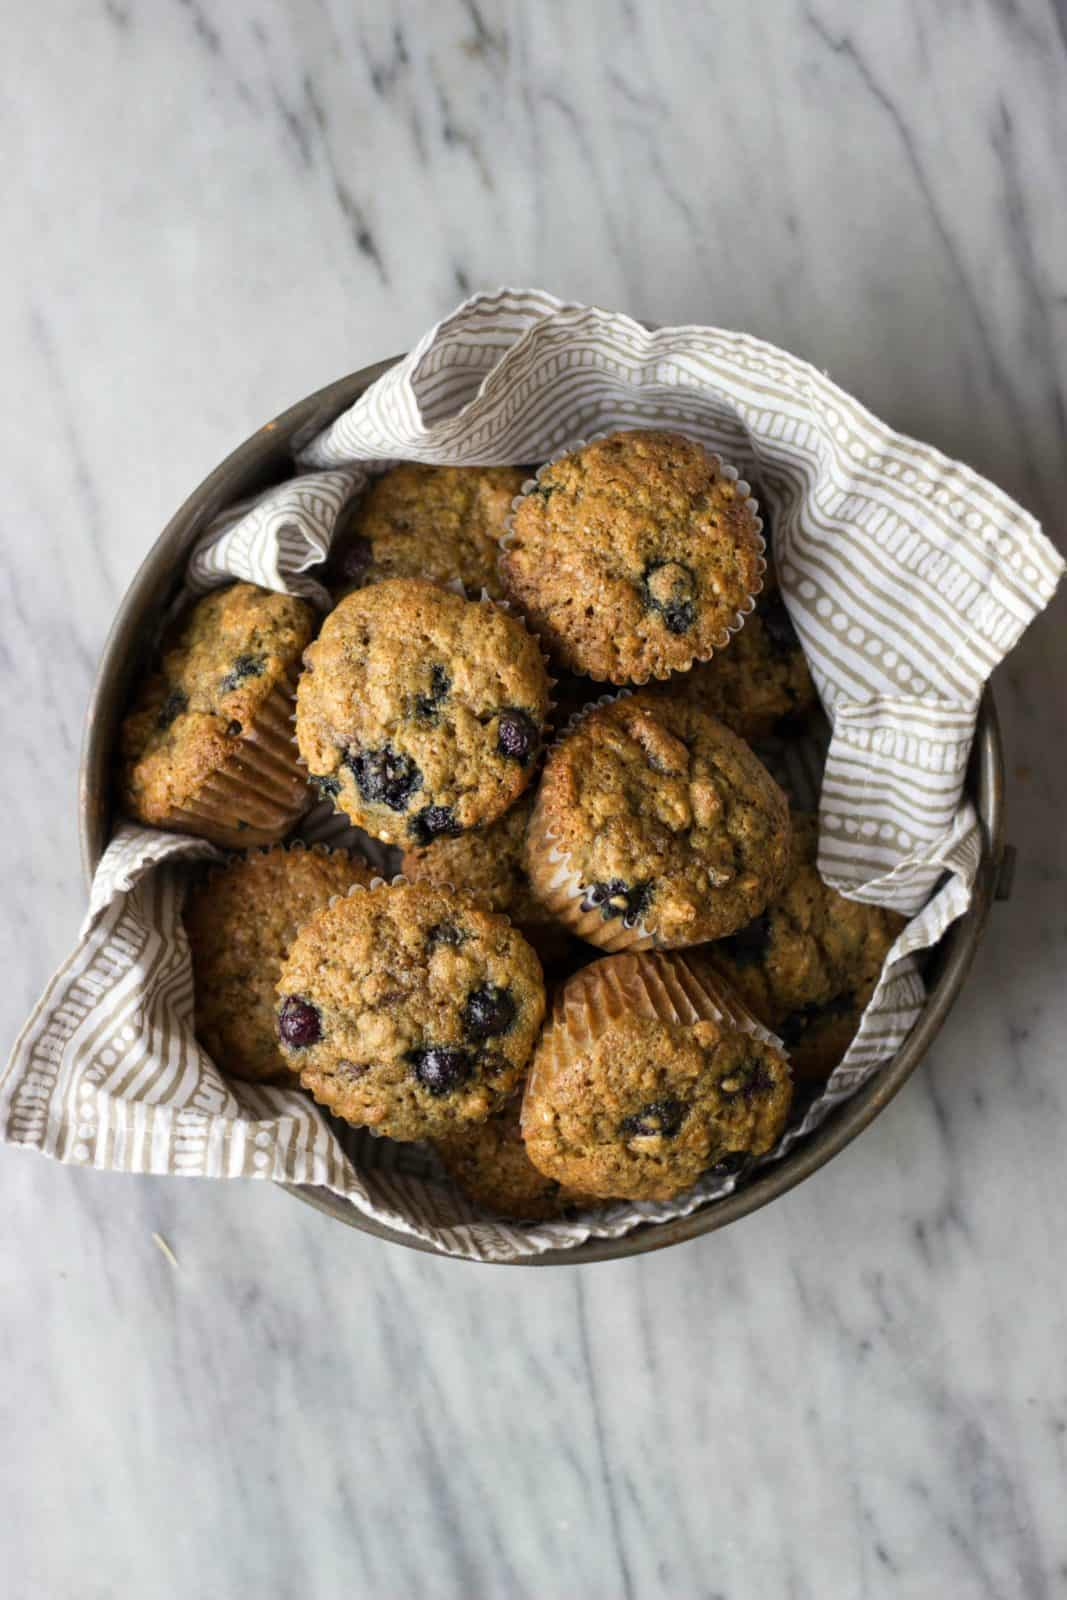 Blueberry Date Muffins in a bowl is a great healthy summer recipe to try